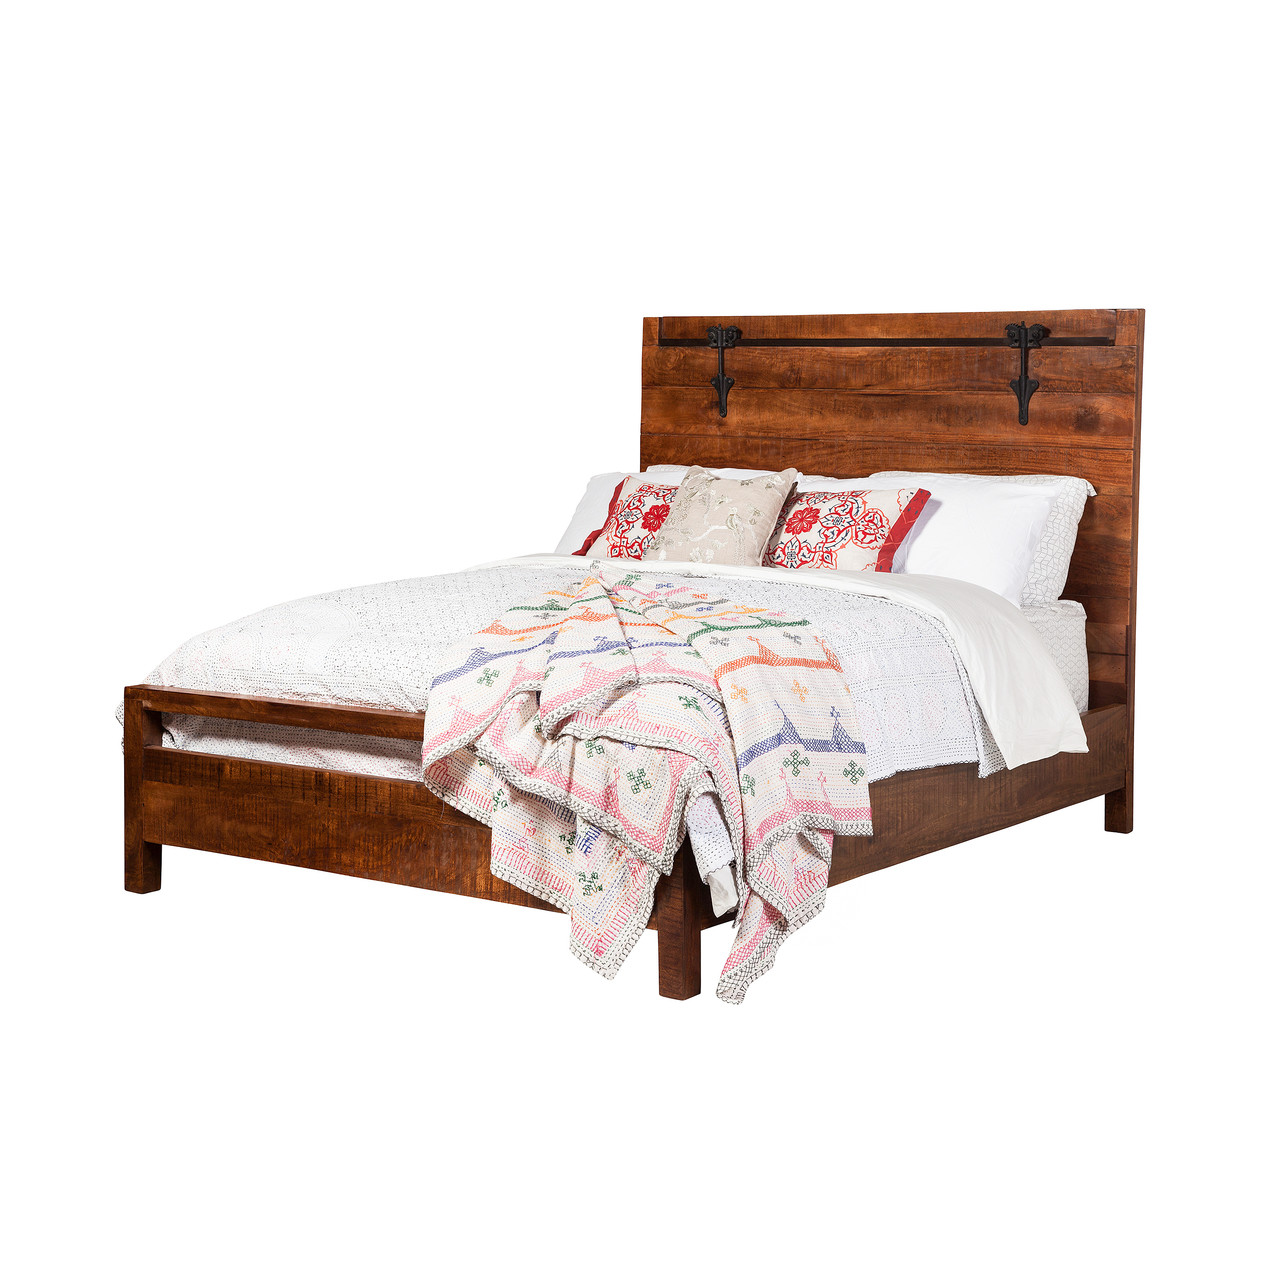 f0abbf401b16 Owen Reclaimed Mango Wood Queen Bed Frame - Design Tree Home